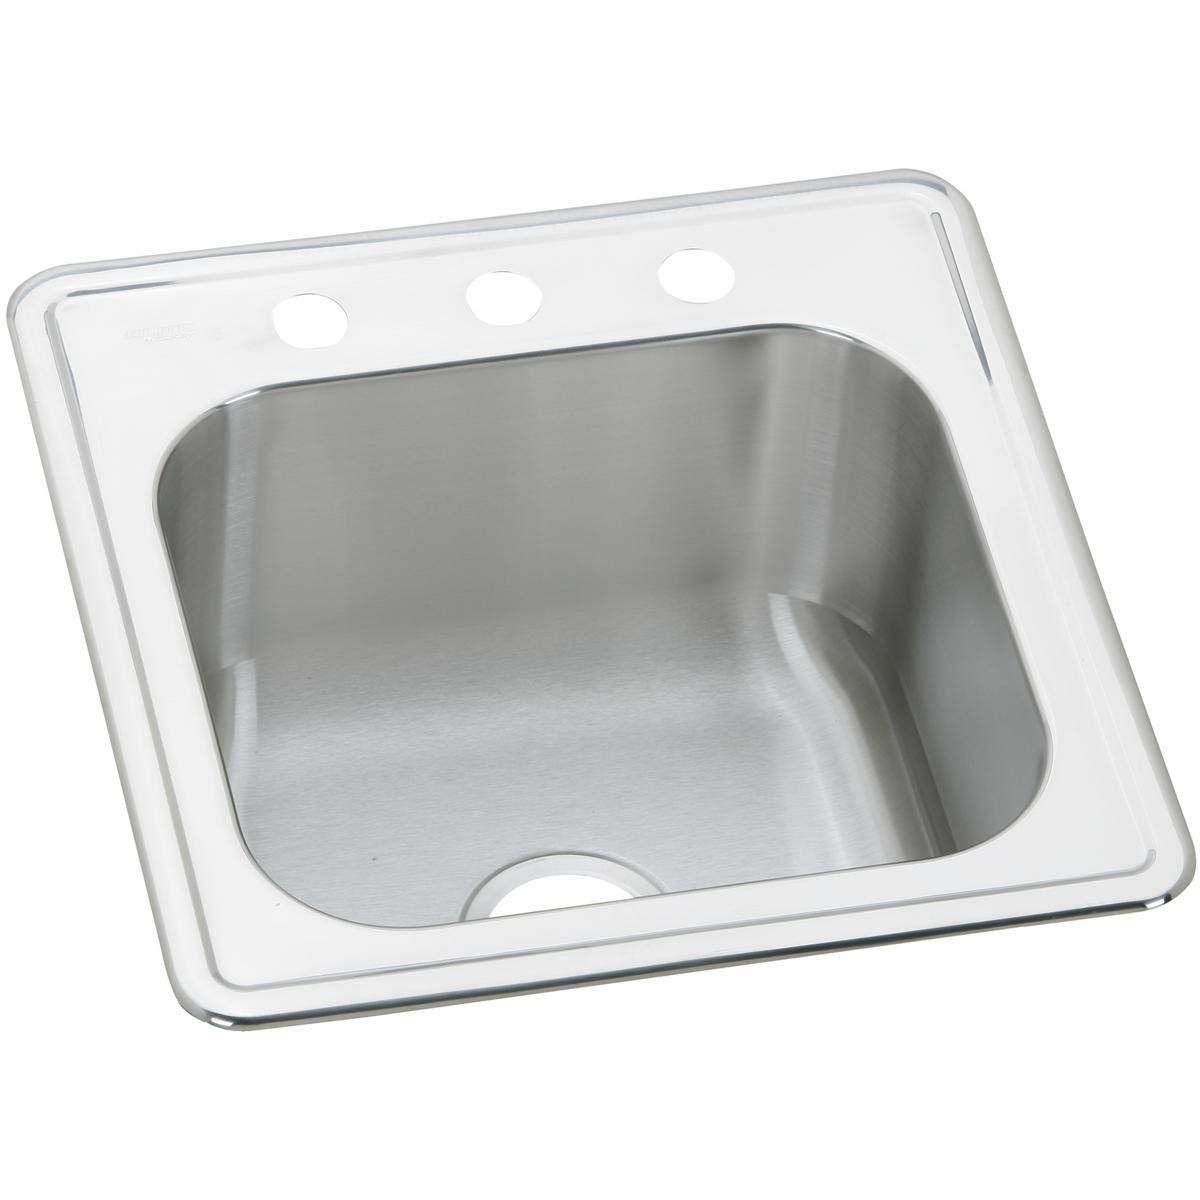 Elkay ESE2020101 Celebrity Single Bowl Drop-in Stainless Steel Laundry Sink